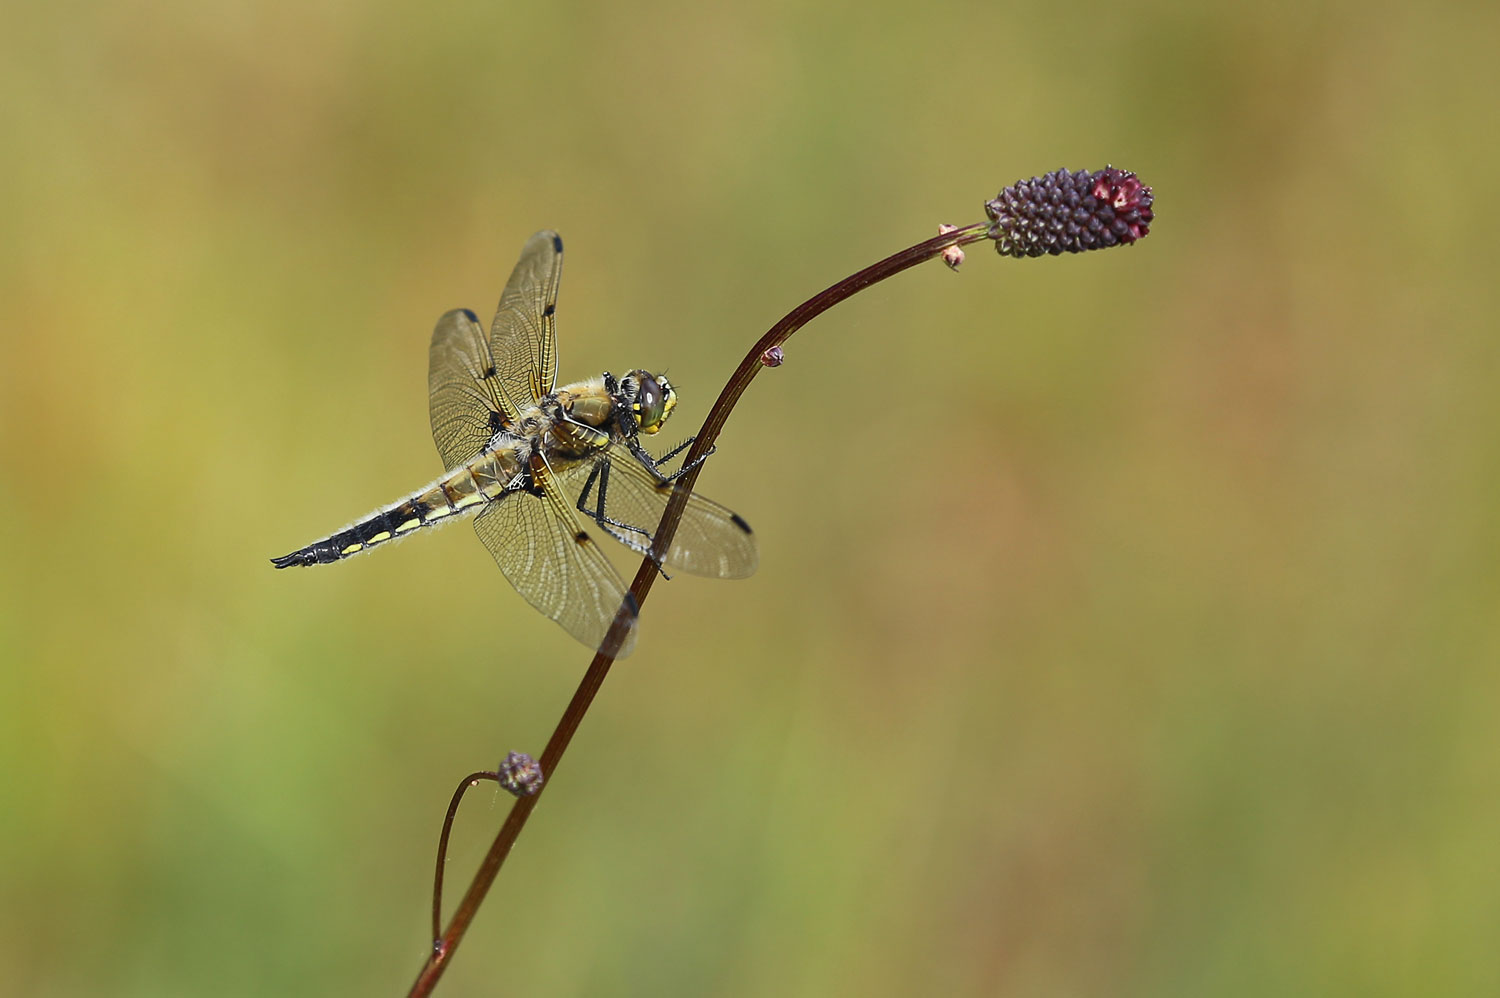 The Four-spotted skimmer dragonfly ( Libellula quadrimaculata ) perched on a Sitka burnett stem.